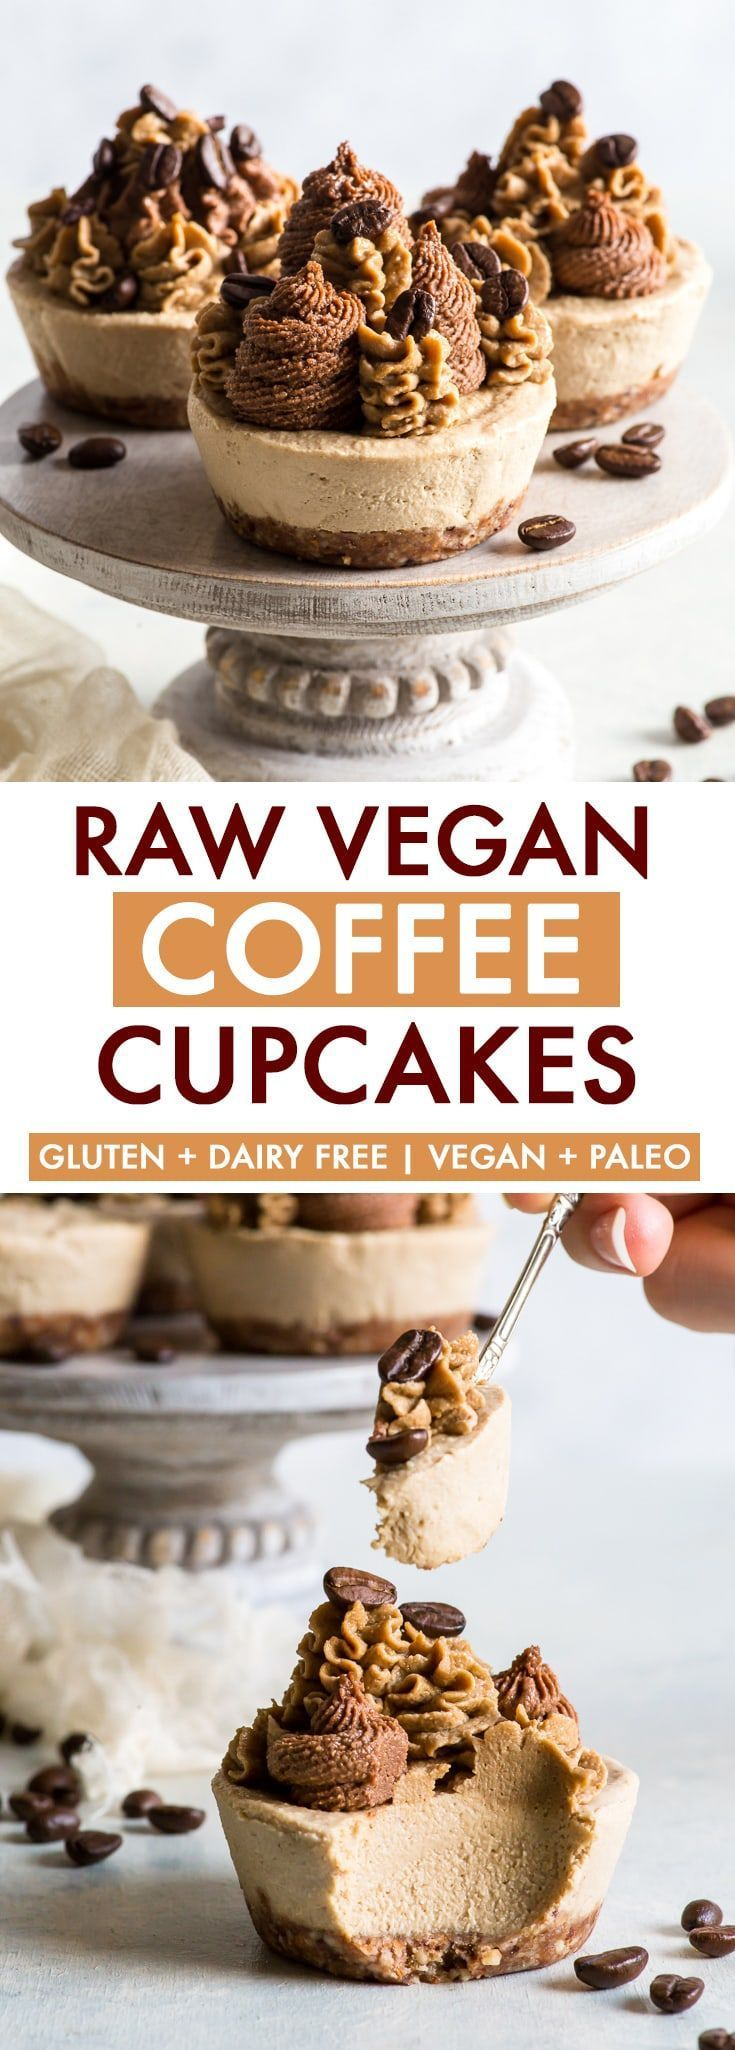 Raw Vegan Coffee Cupcakes – The Loopy Whisk